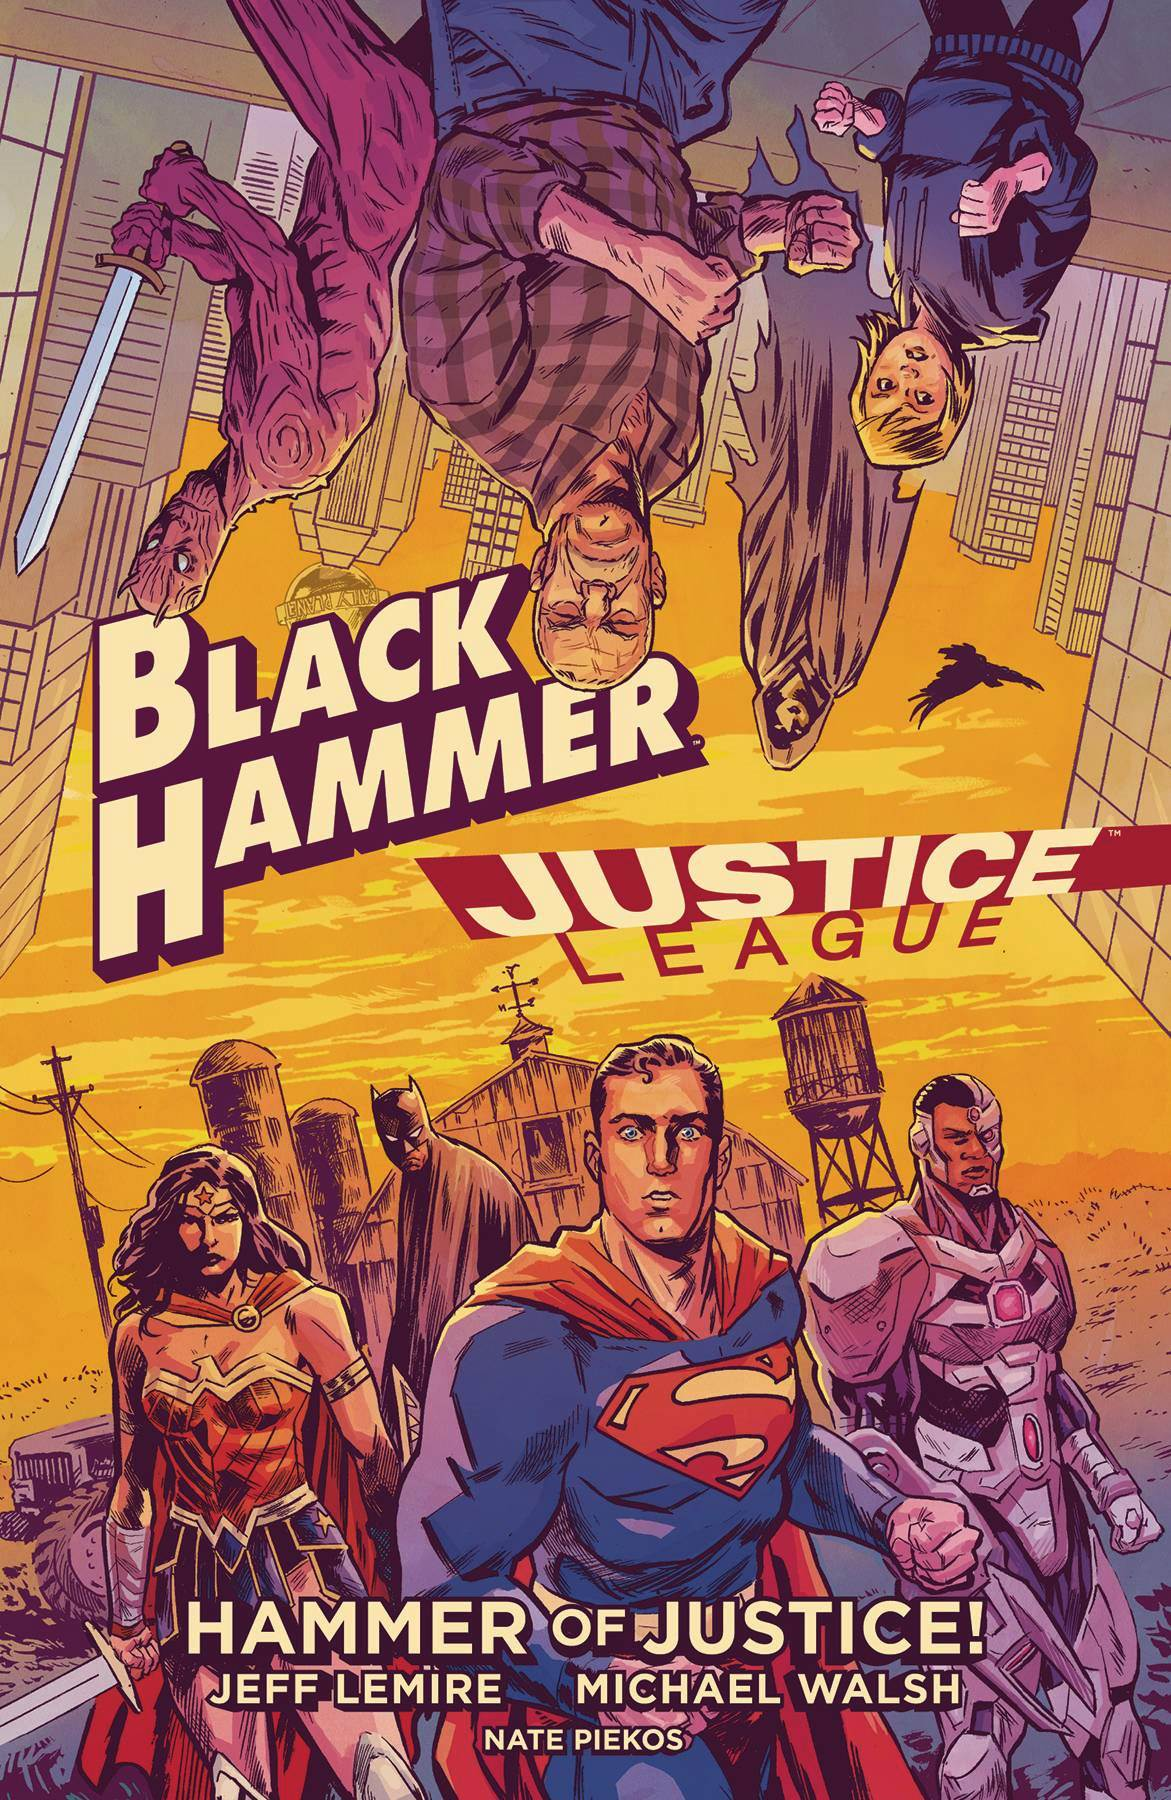 Black Hammer / Justice League: Hammer of Justice! (2019) HC